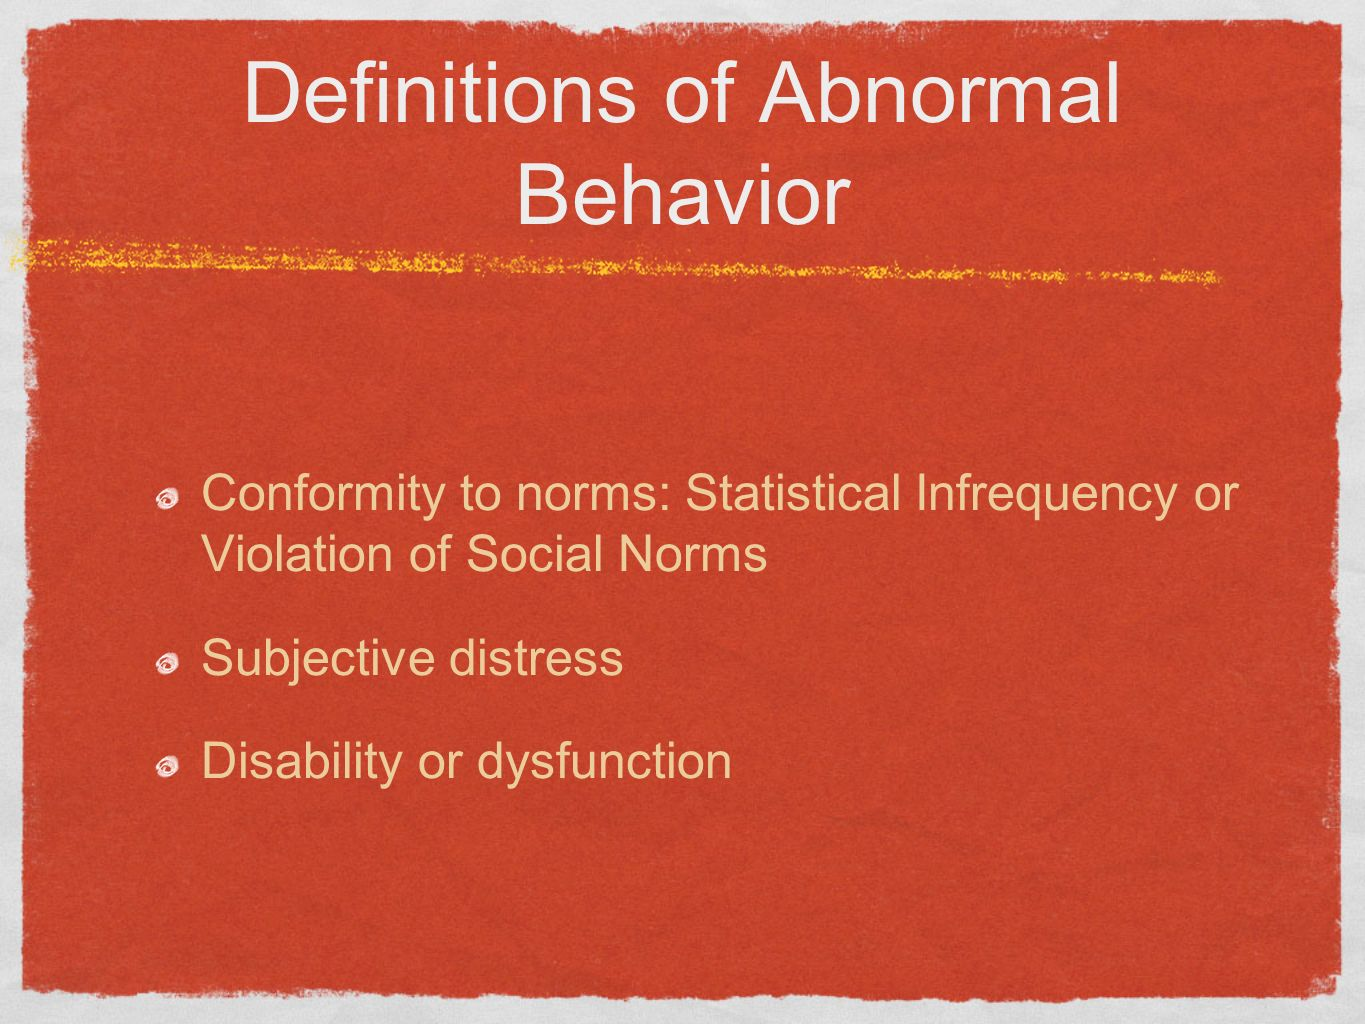 Definitions of Abnormal Behavior